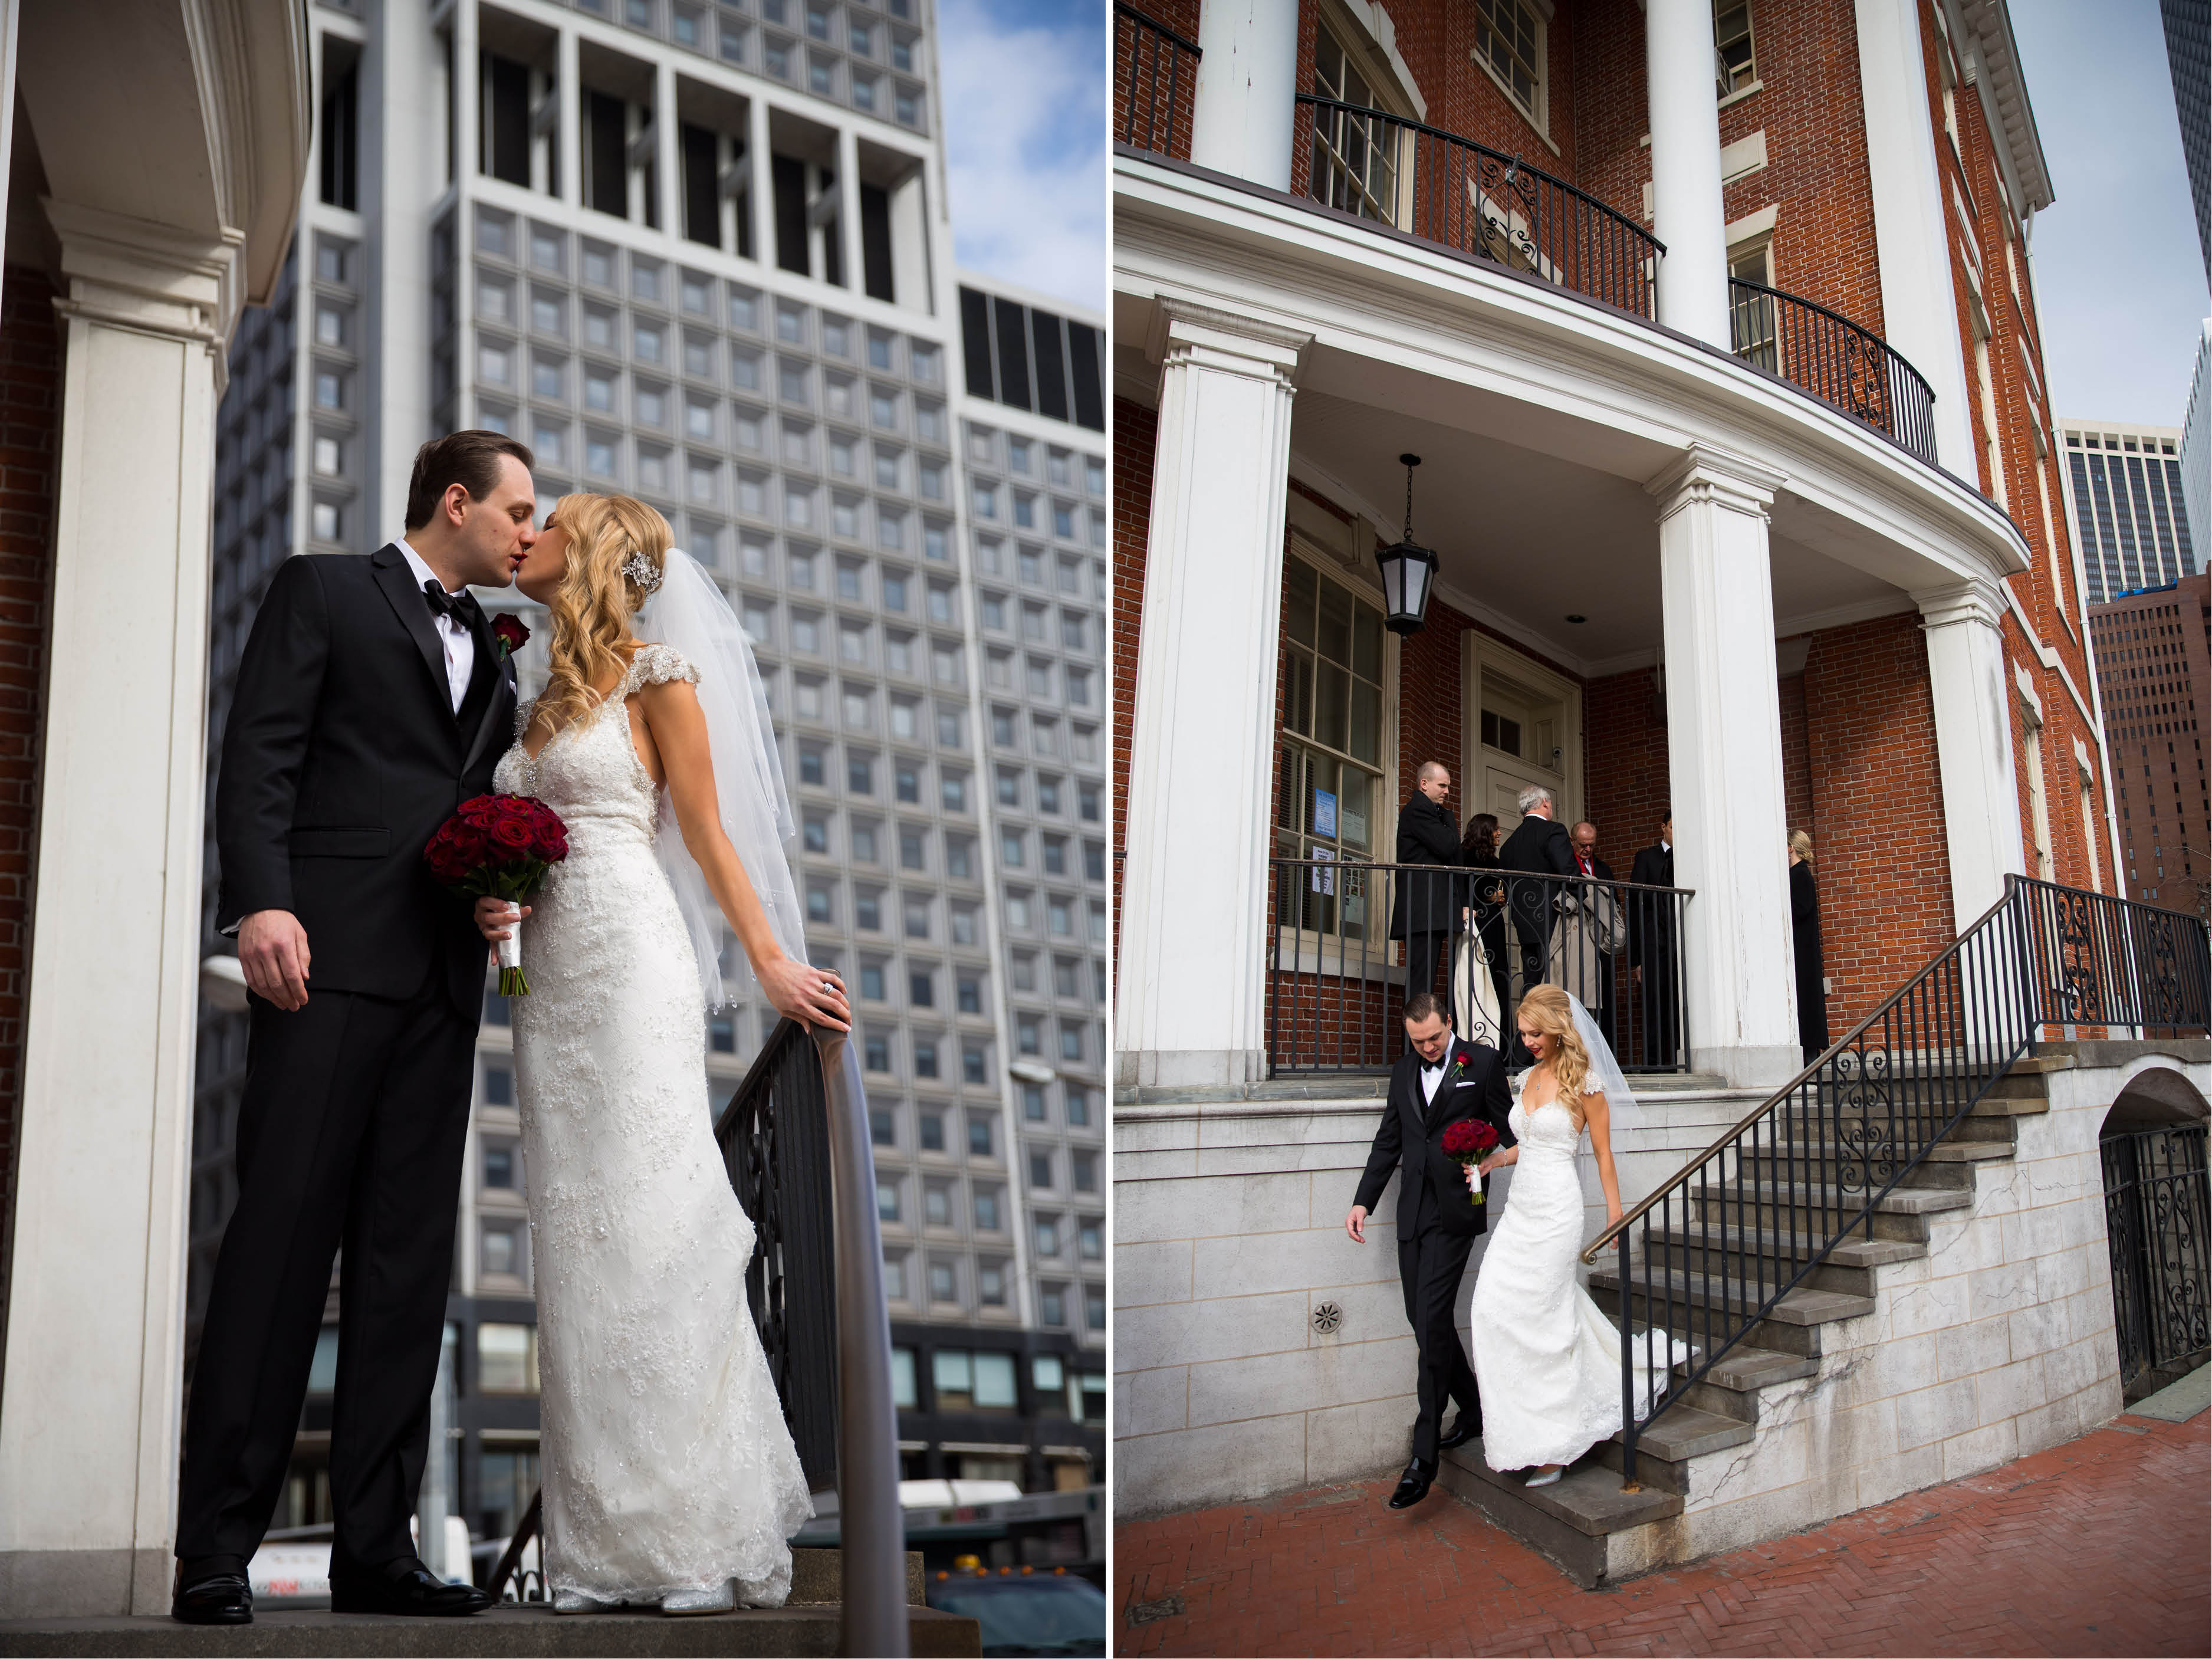 Emma_cleary_photography India House wedding